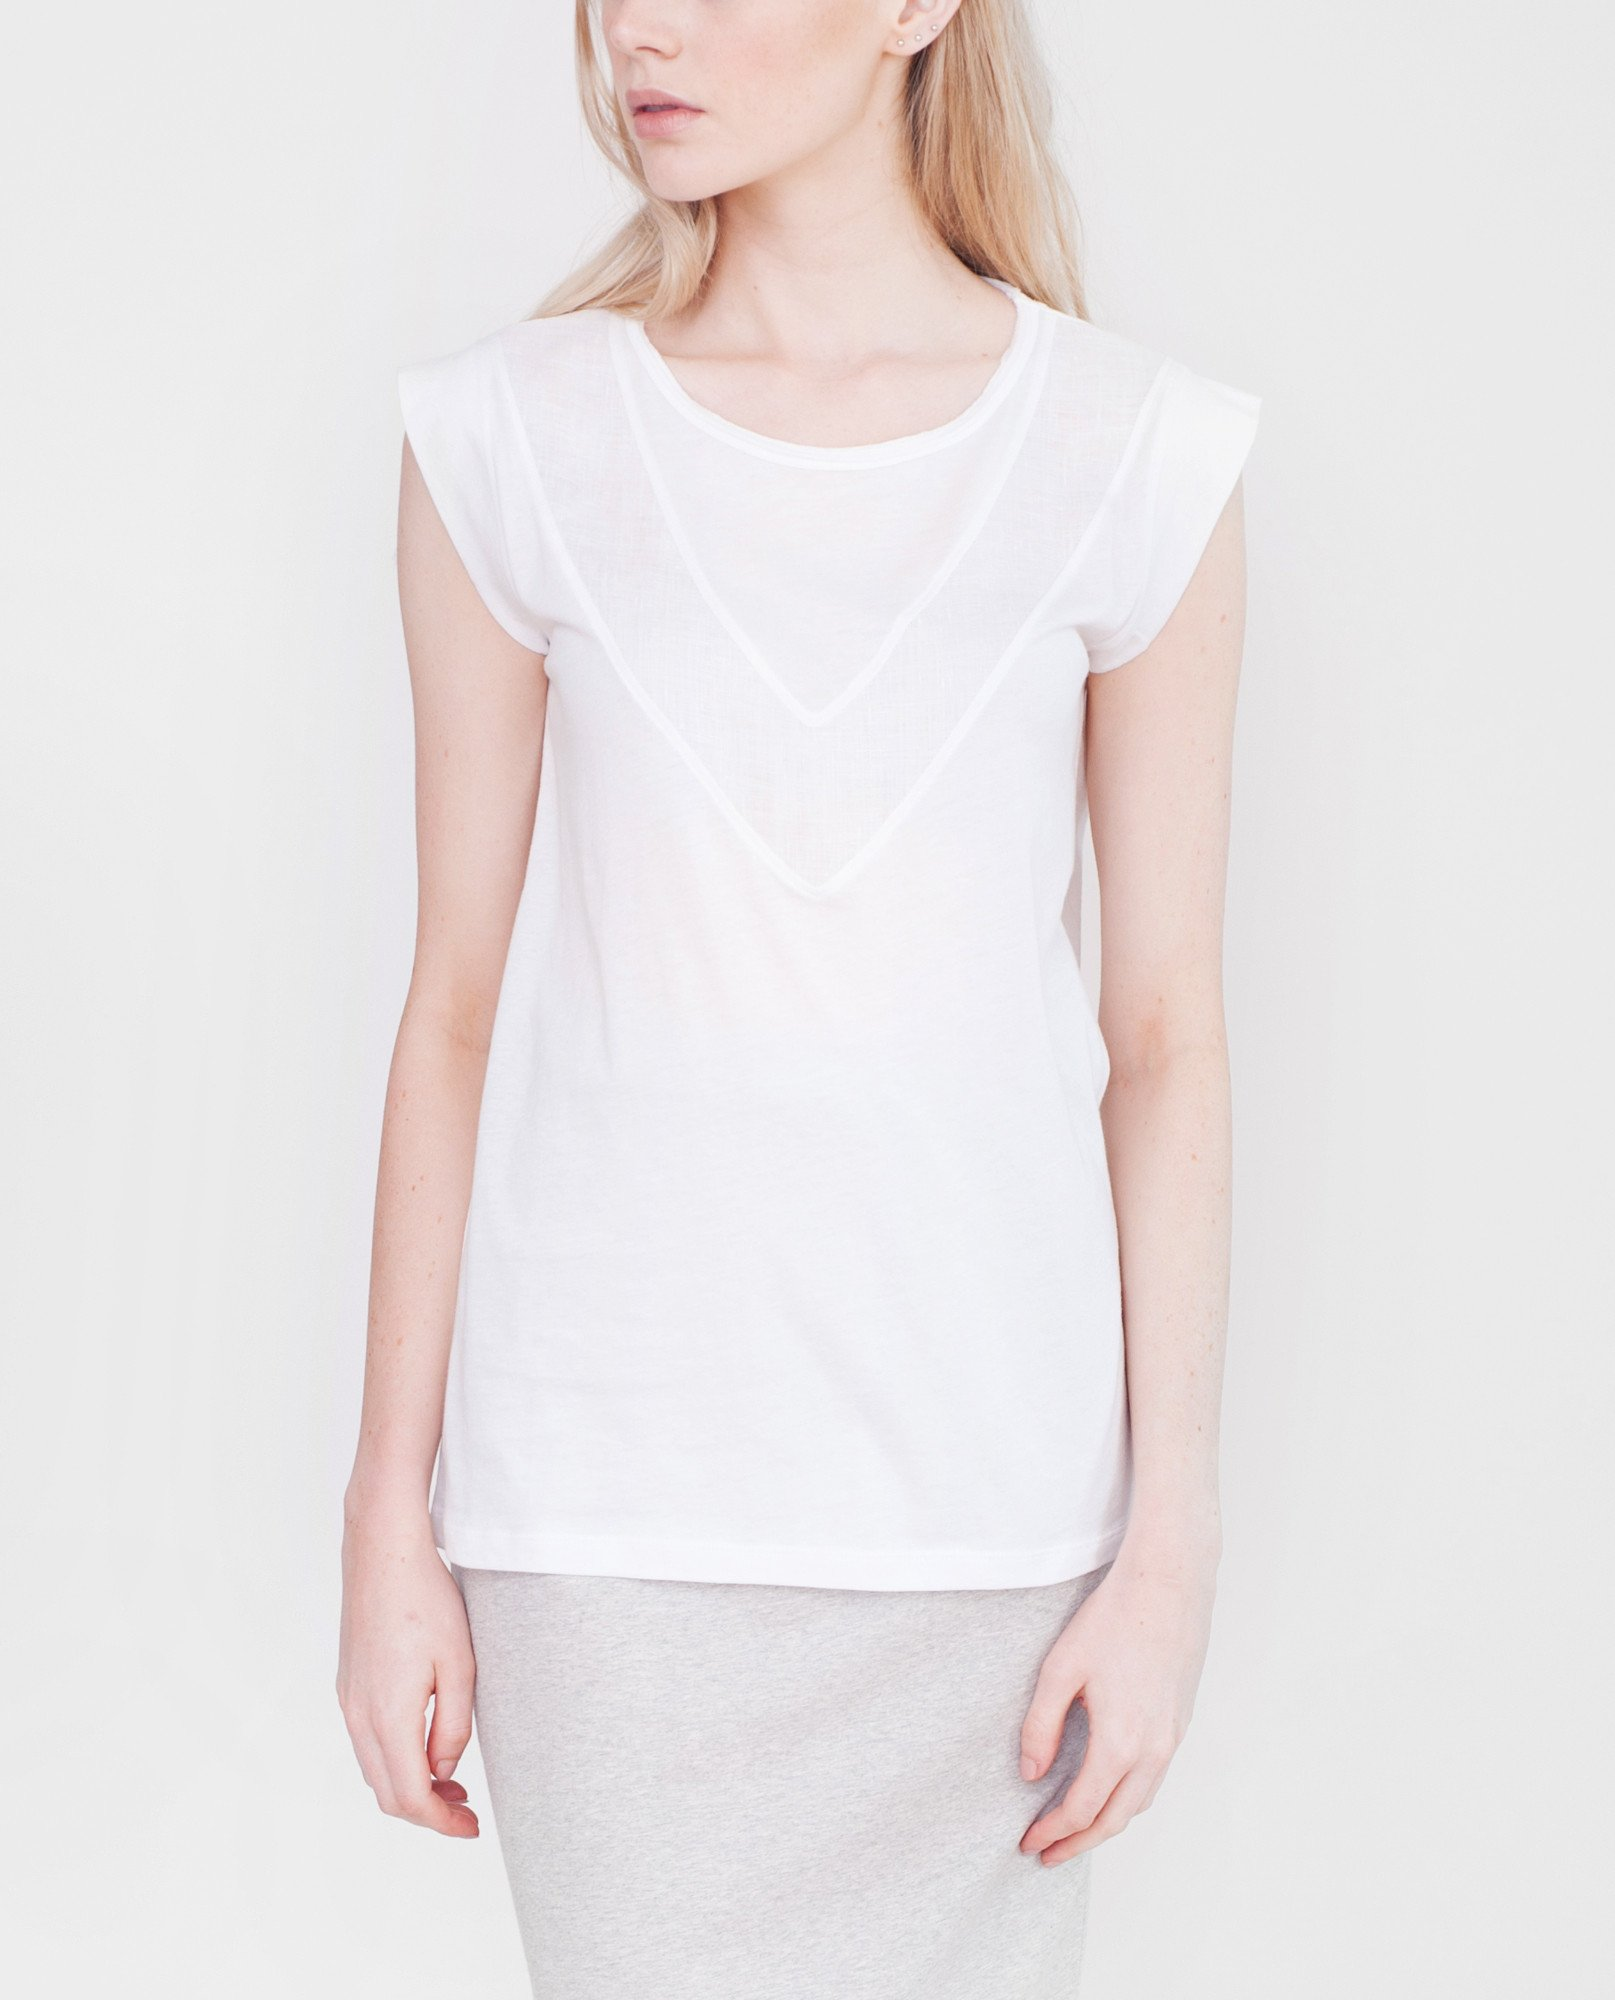 ANNABELLE Organic Cotton And Linen Top In White from Beaumont Organic